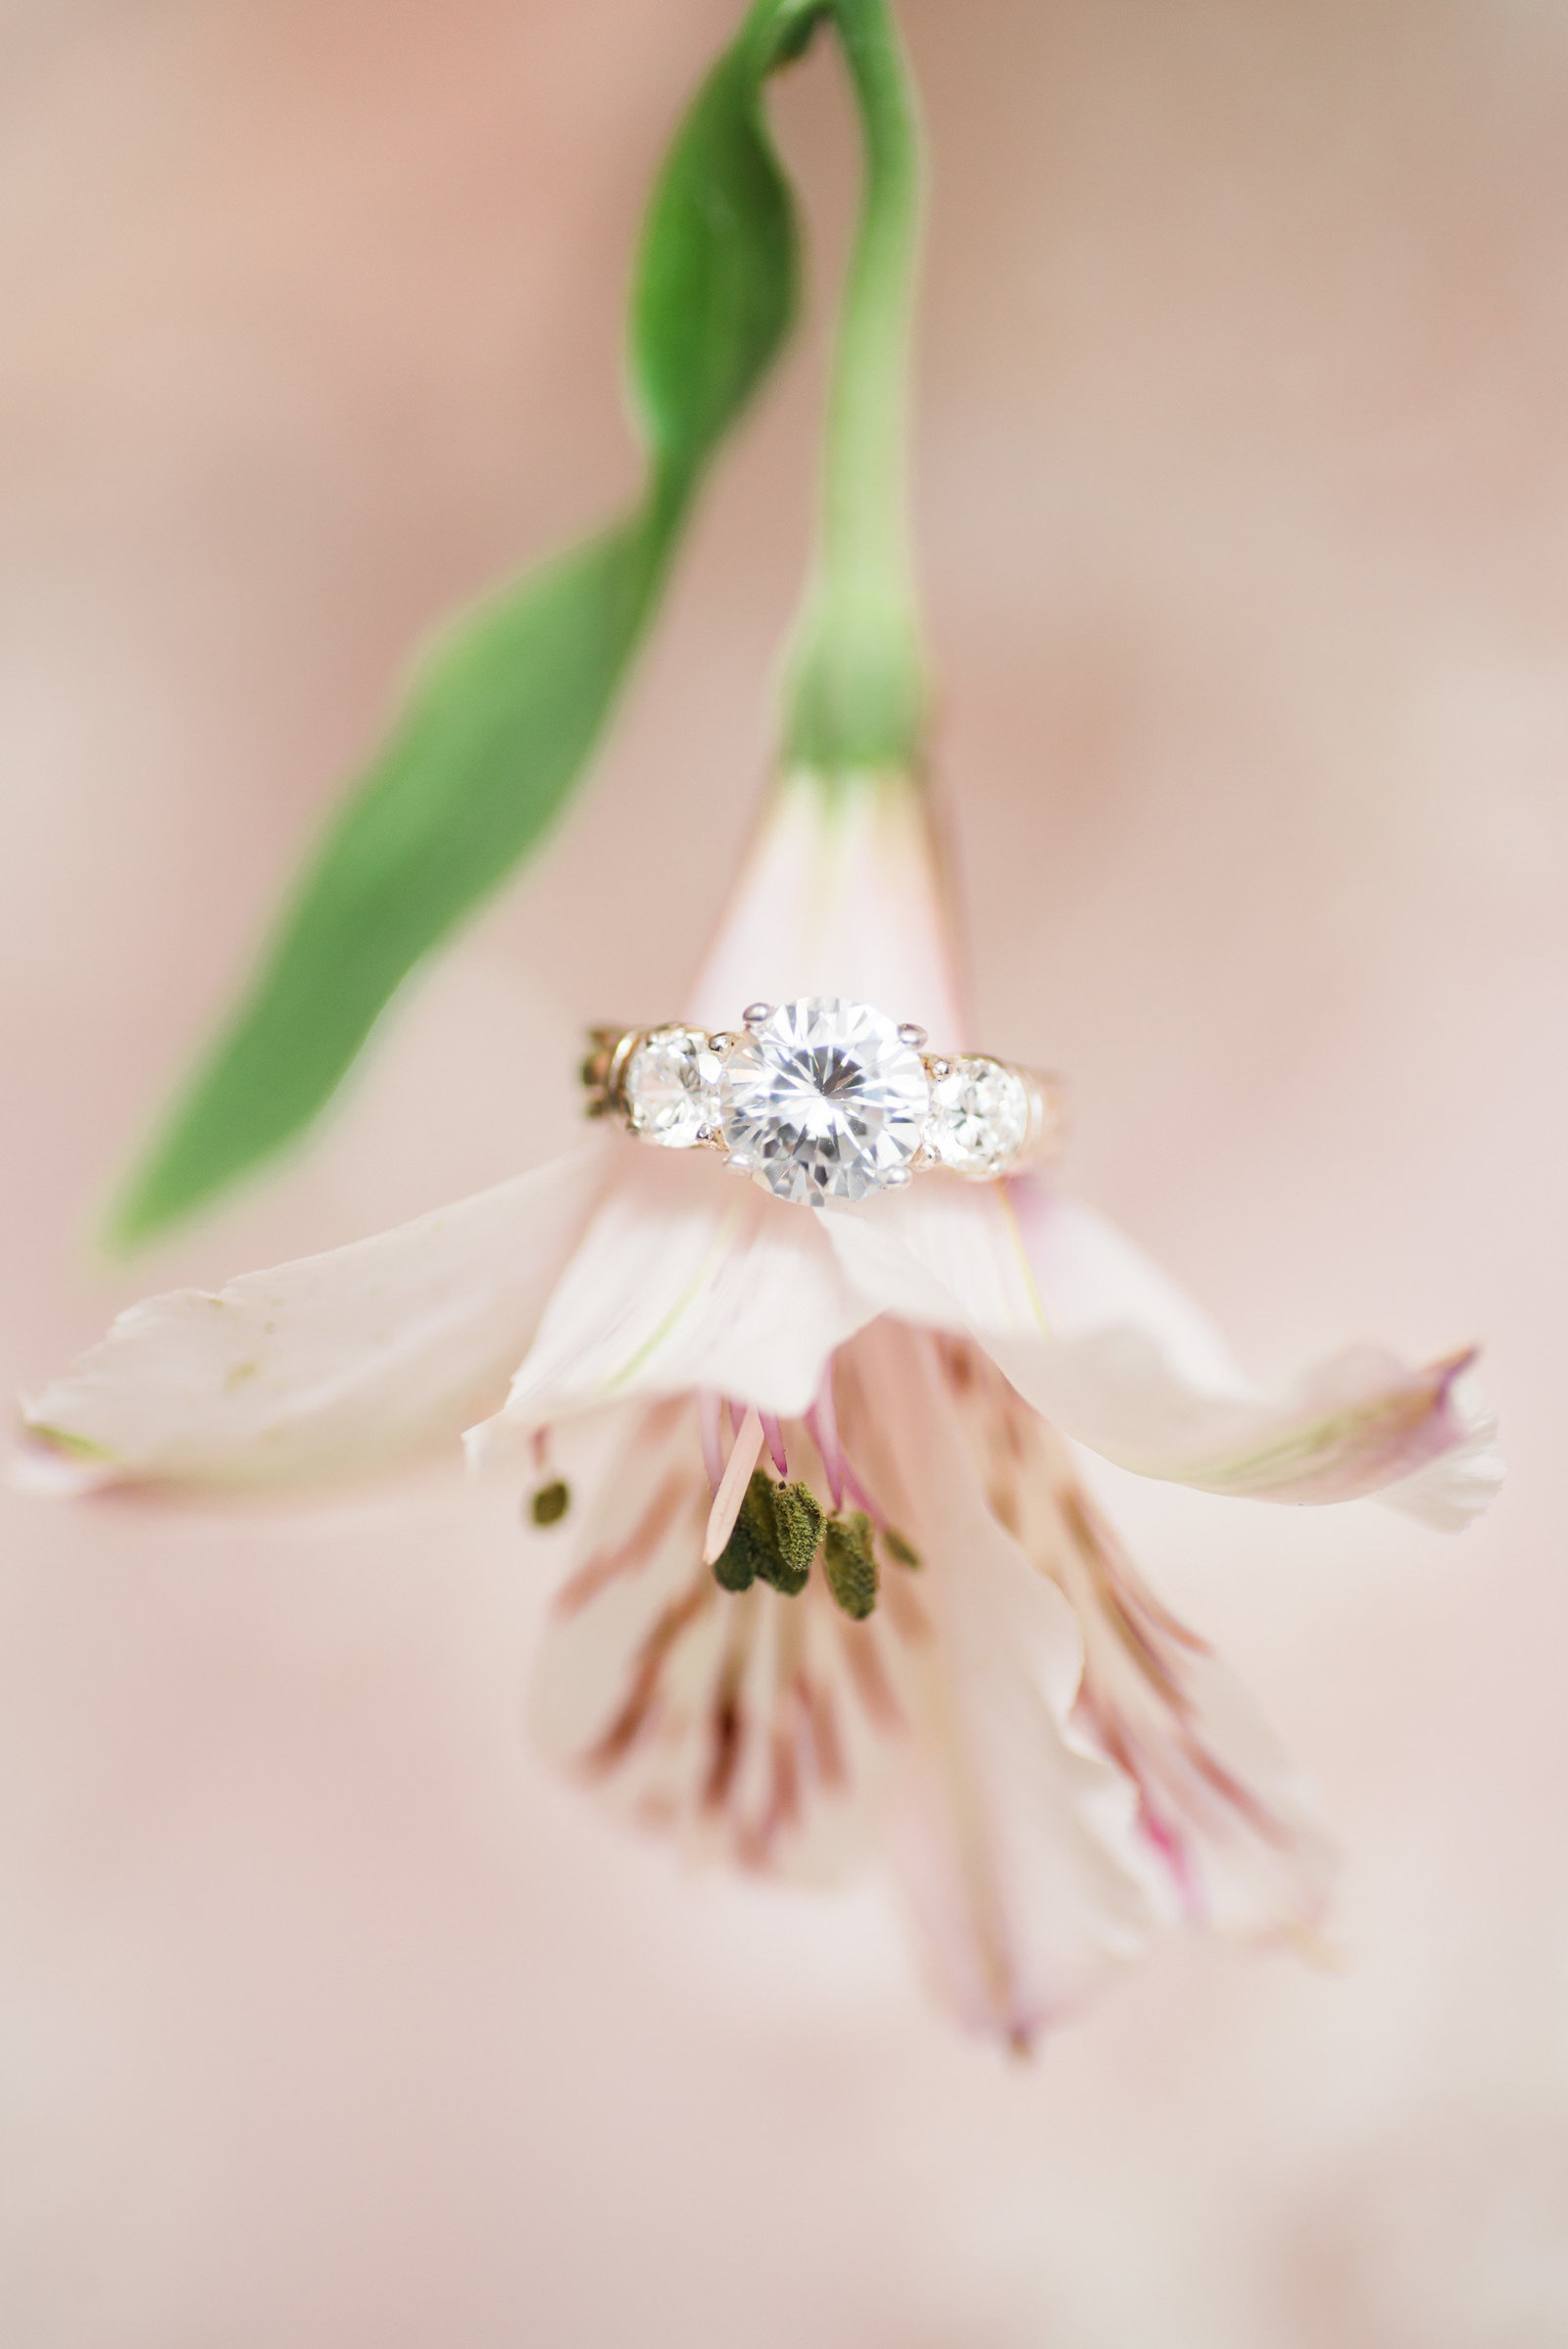 Wedding engagement ring on a pink carnation flower photo